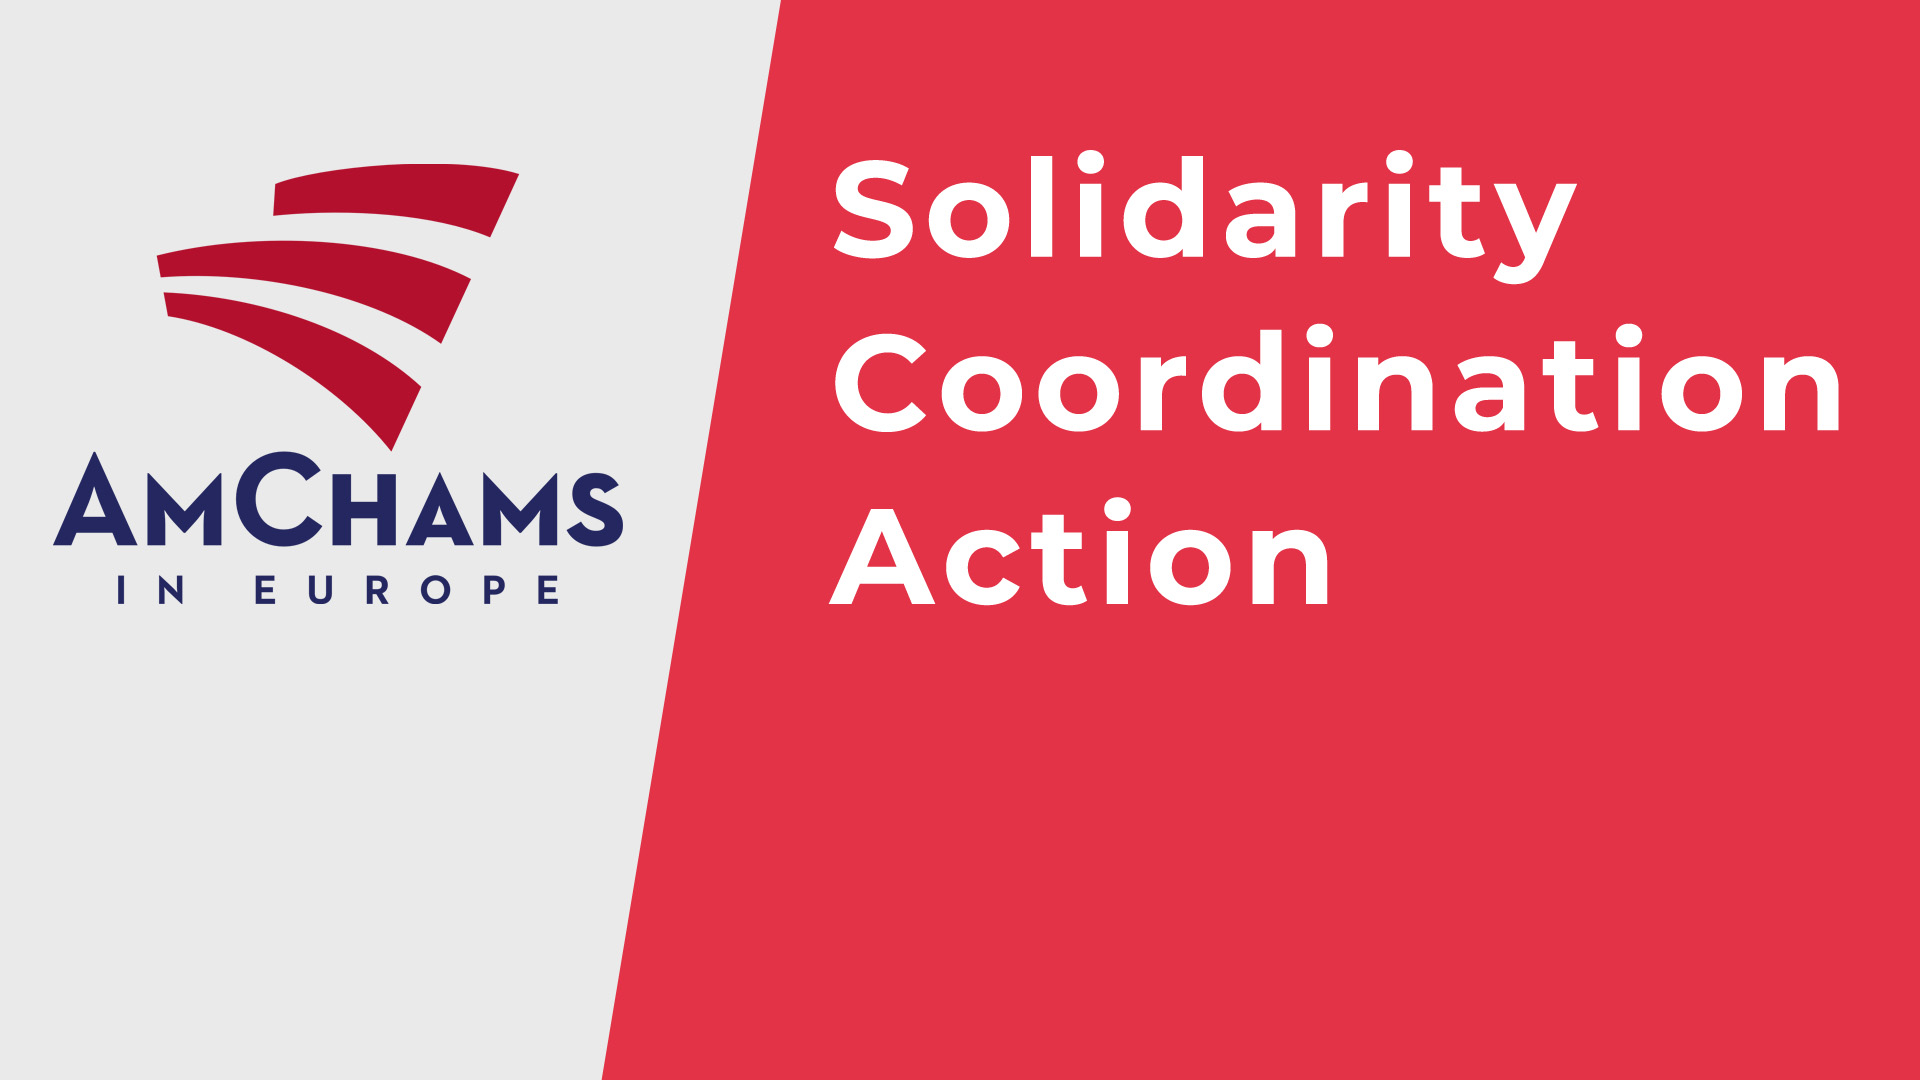 AmChams in Europe Joint Statement on Solidarity, Coordination, and Action